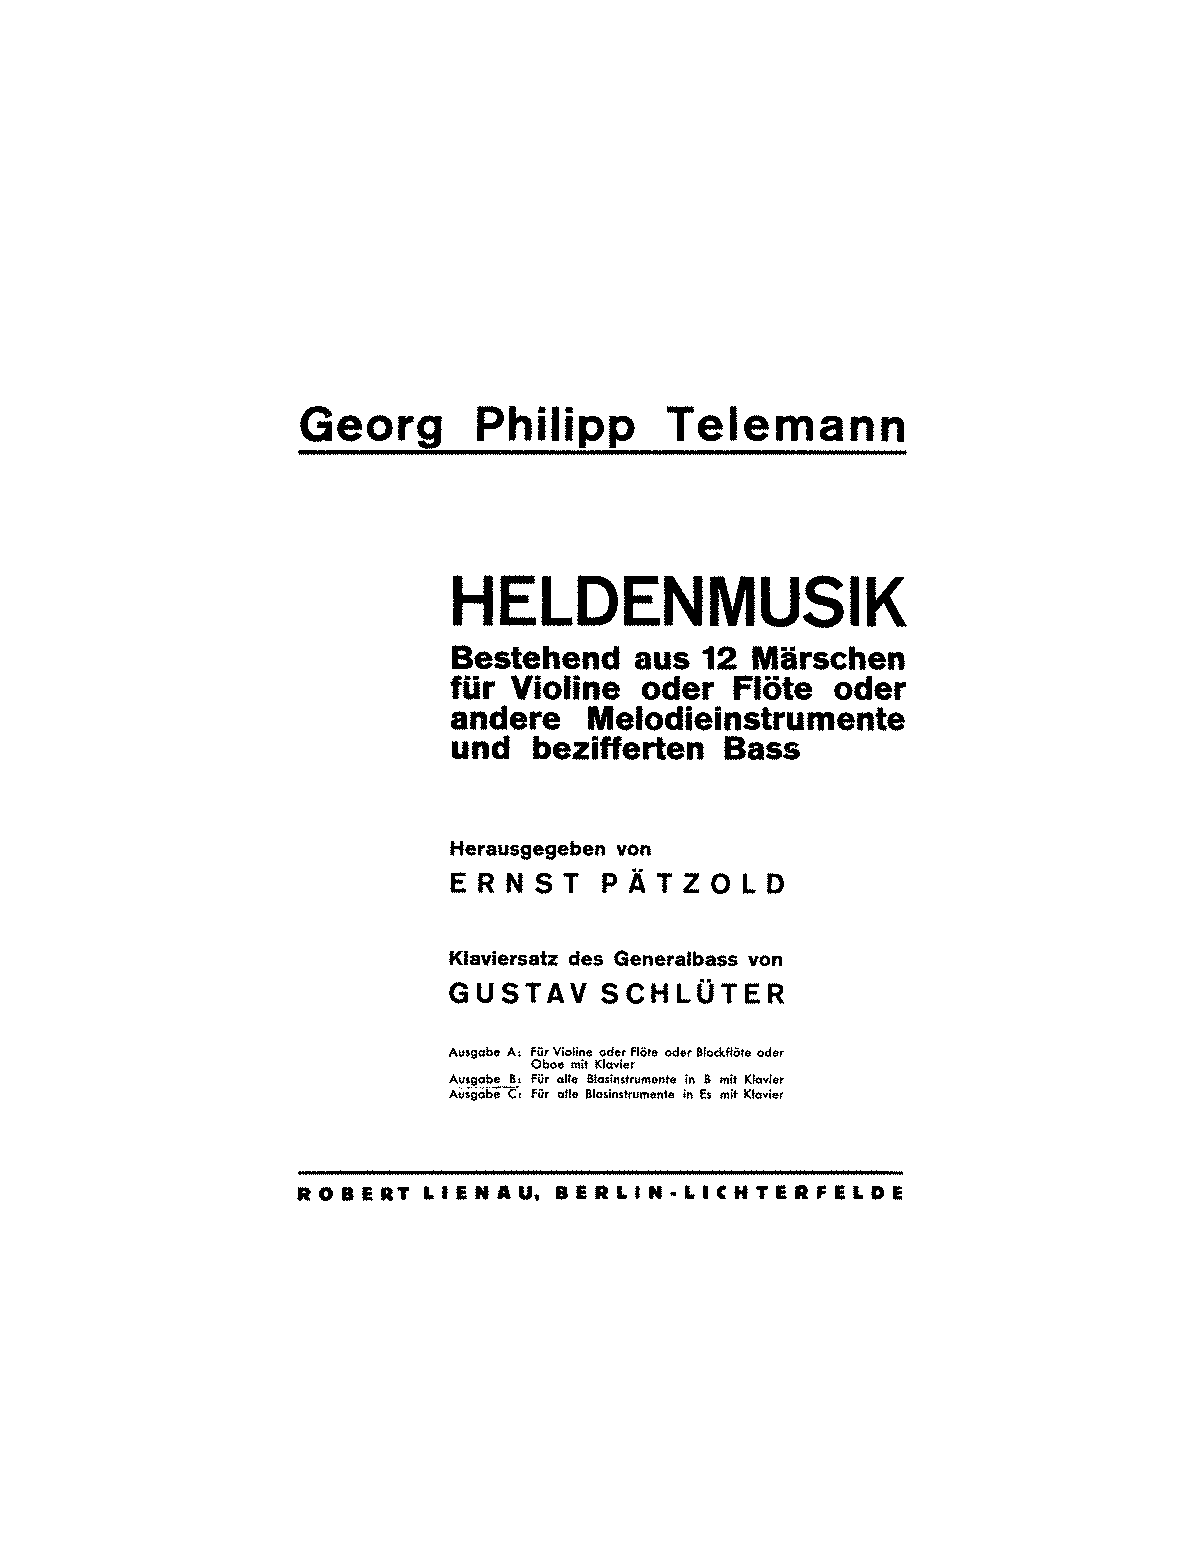 PMLP318963-TELEMANN Heldenmusik TR or VC or FL-VN or VA and PF.pdf